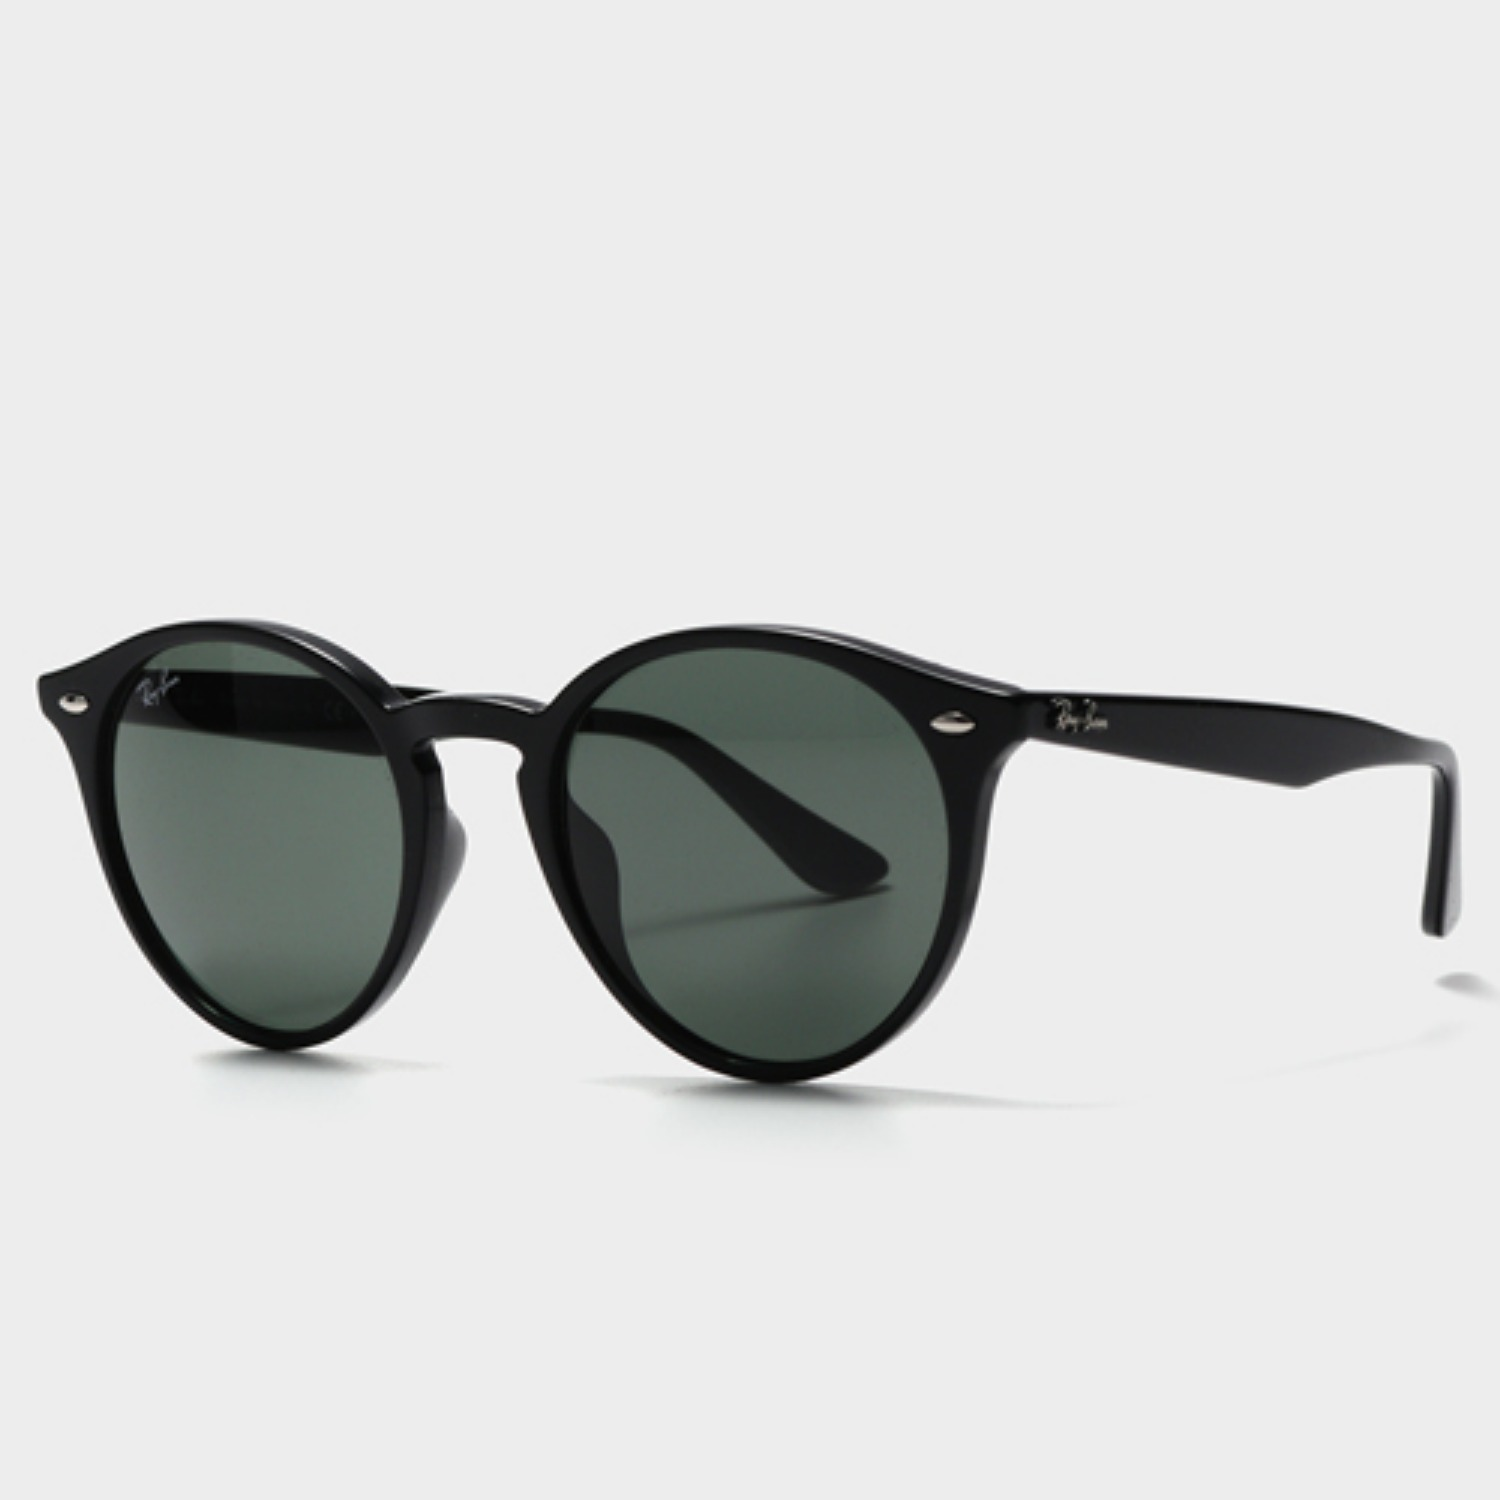 [레이벤선글라스] RB2180F 601 71 (51) (Green Lens) (Ray-Ban) / 54% SALE